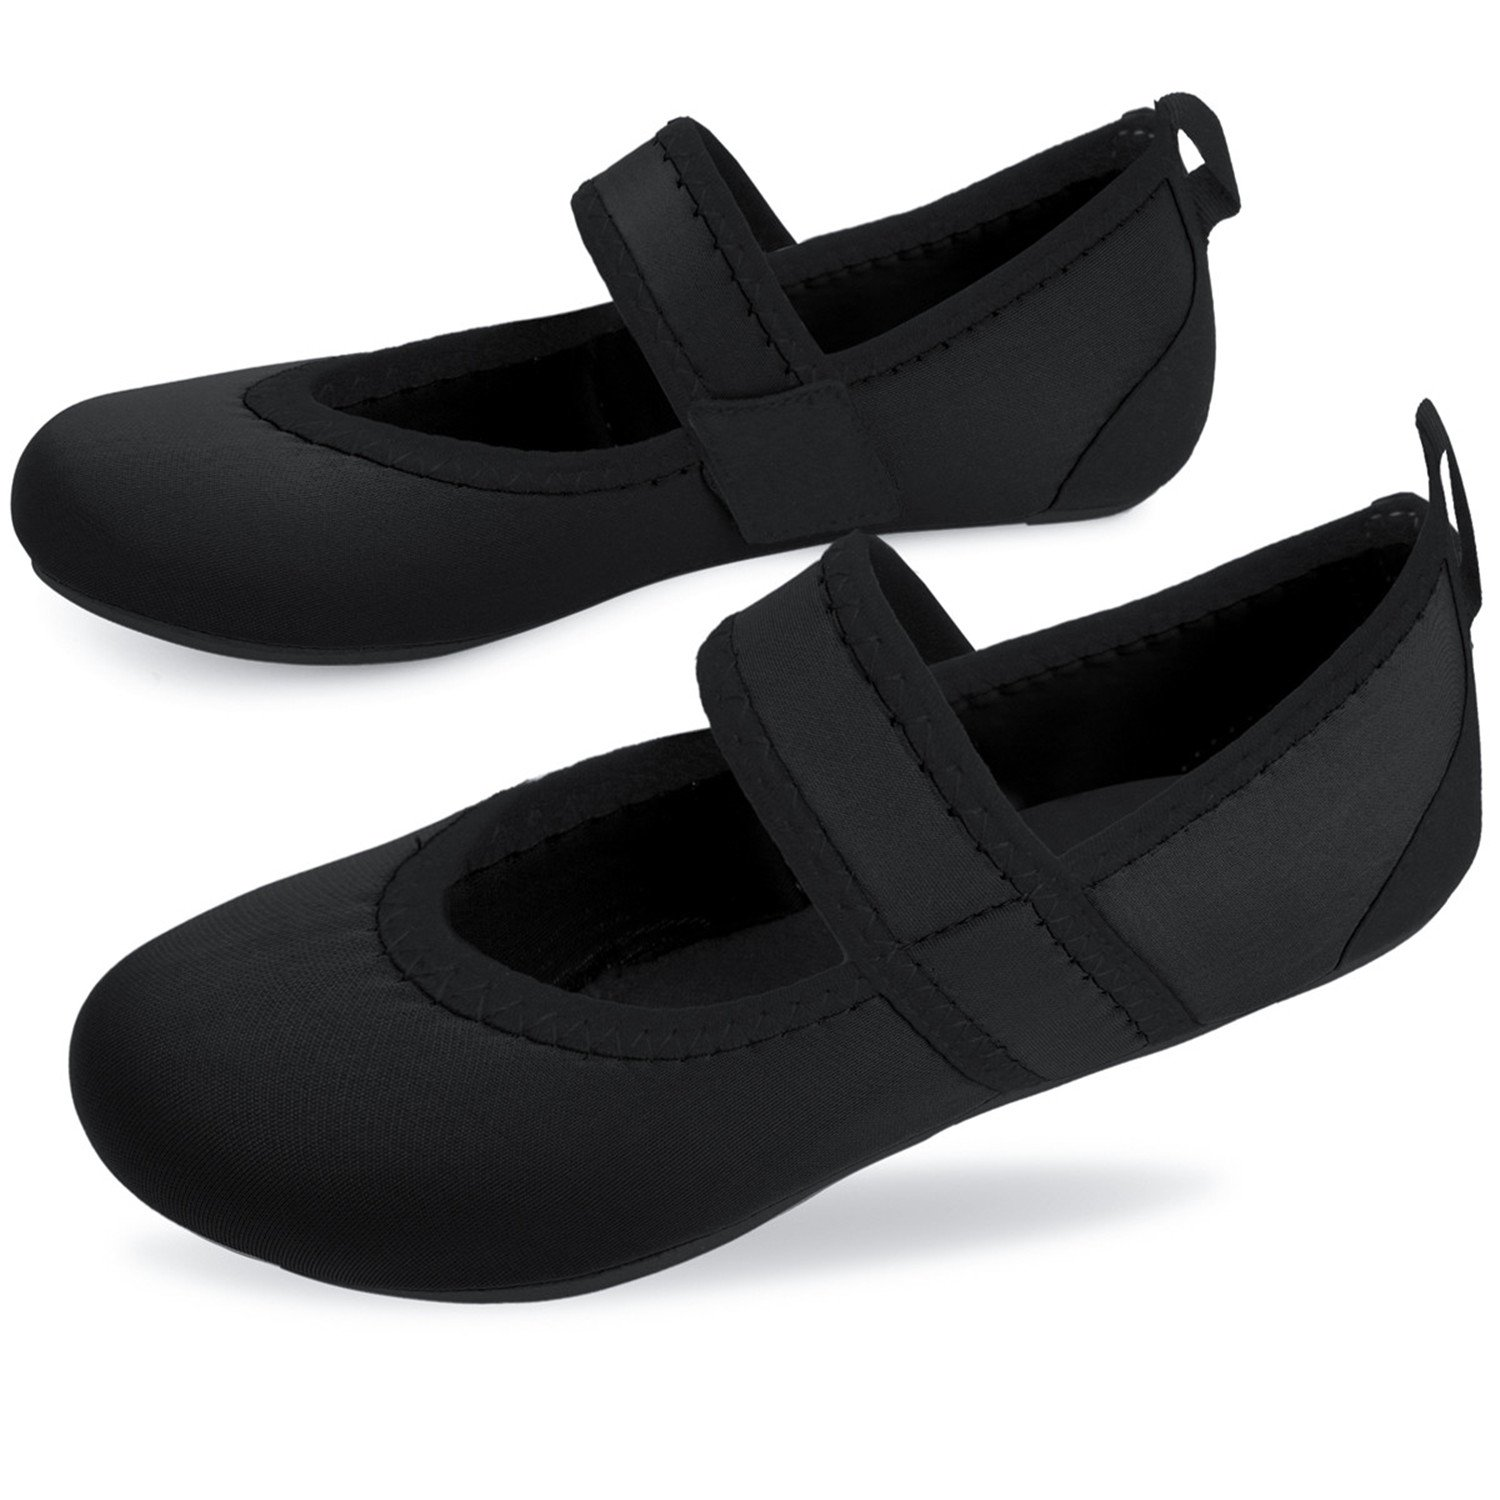 Centipede Demon Water Shoes Flexible Flats for Womens Traveling Flat Shoes Dark by Centipede Demon (Image #4)